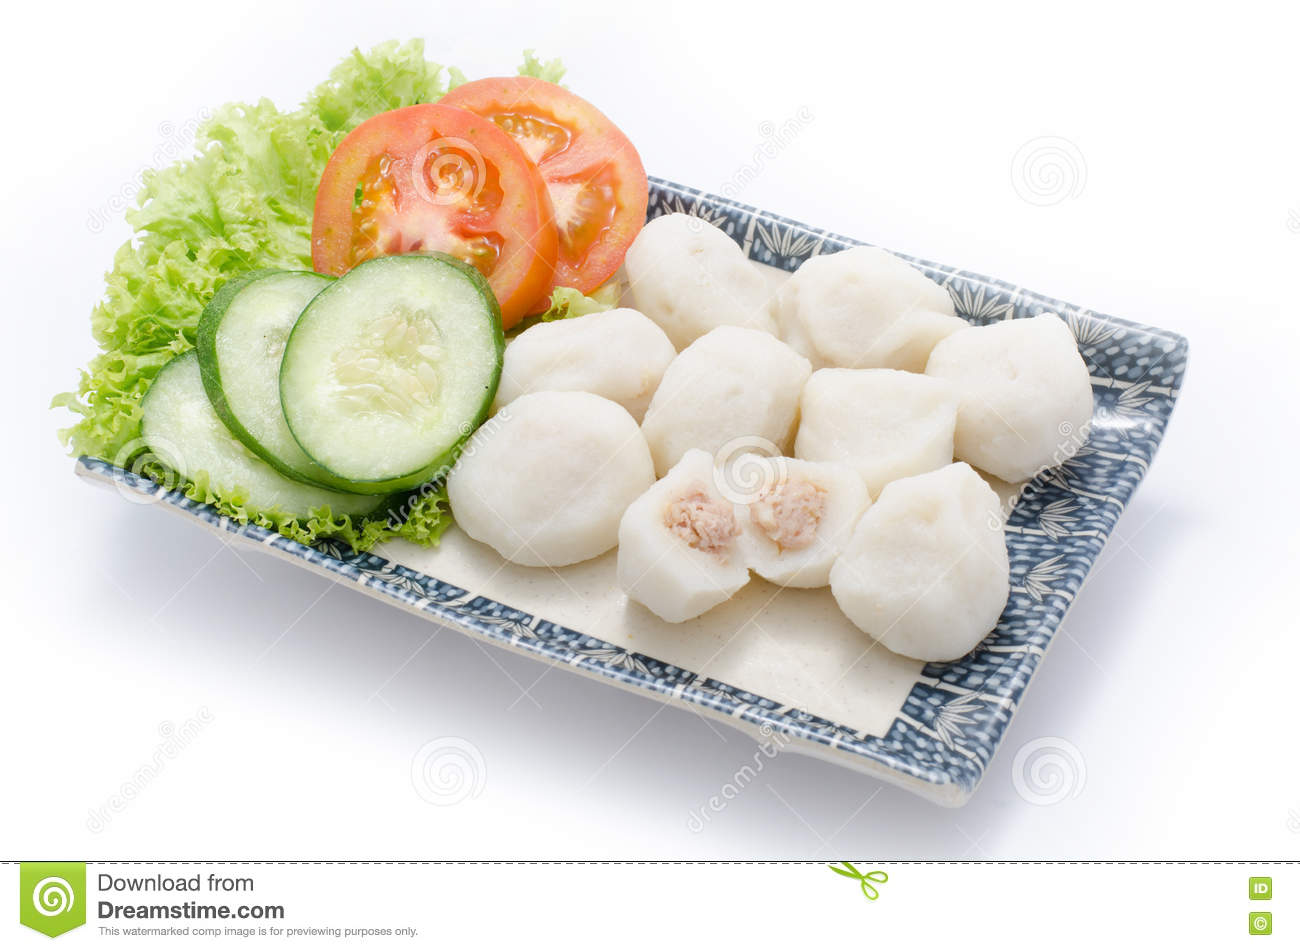 Fish ball with meat and sliced cucumber, tomato, hebs on plate